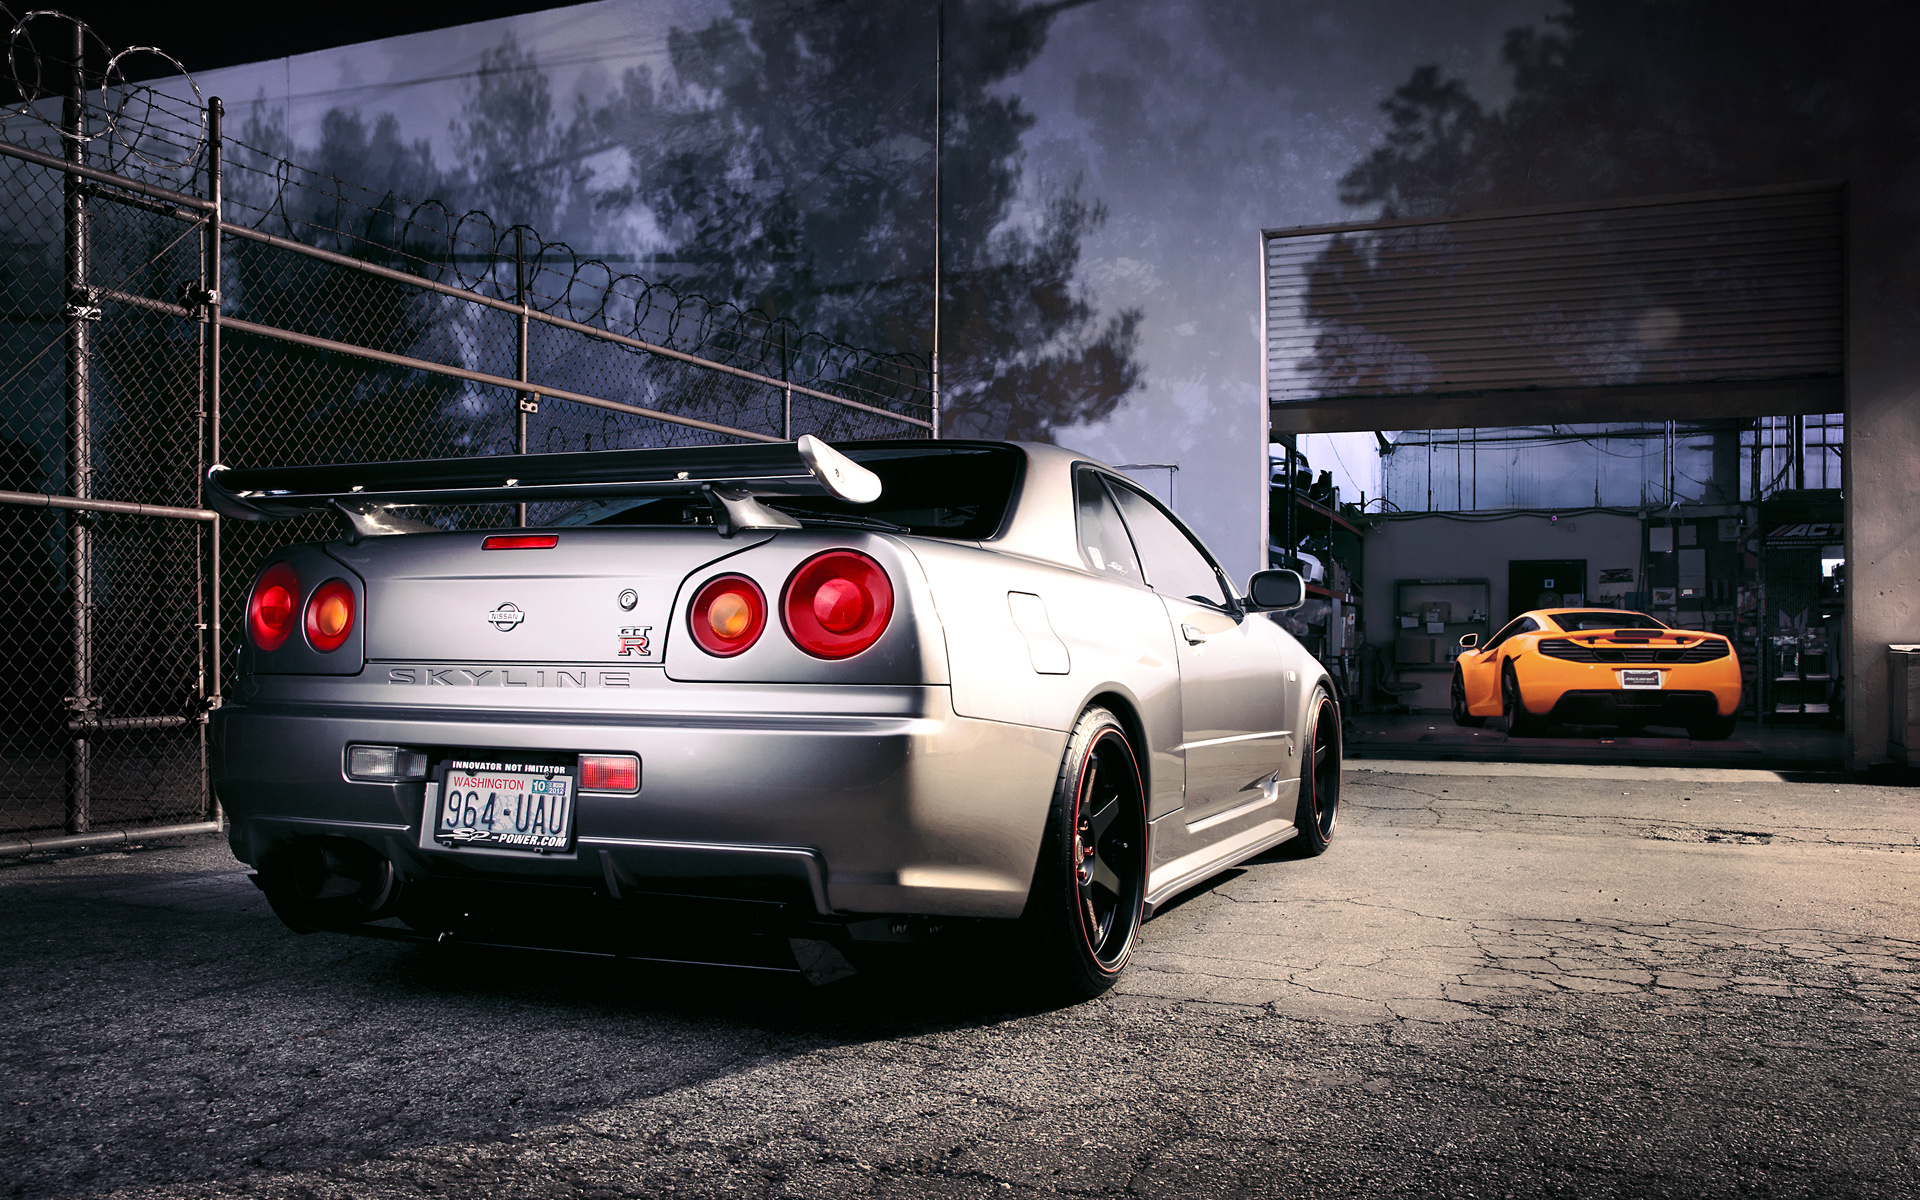 nissan r34 skyline gt r wallpaper | hd car wallpapers | id #3059